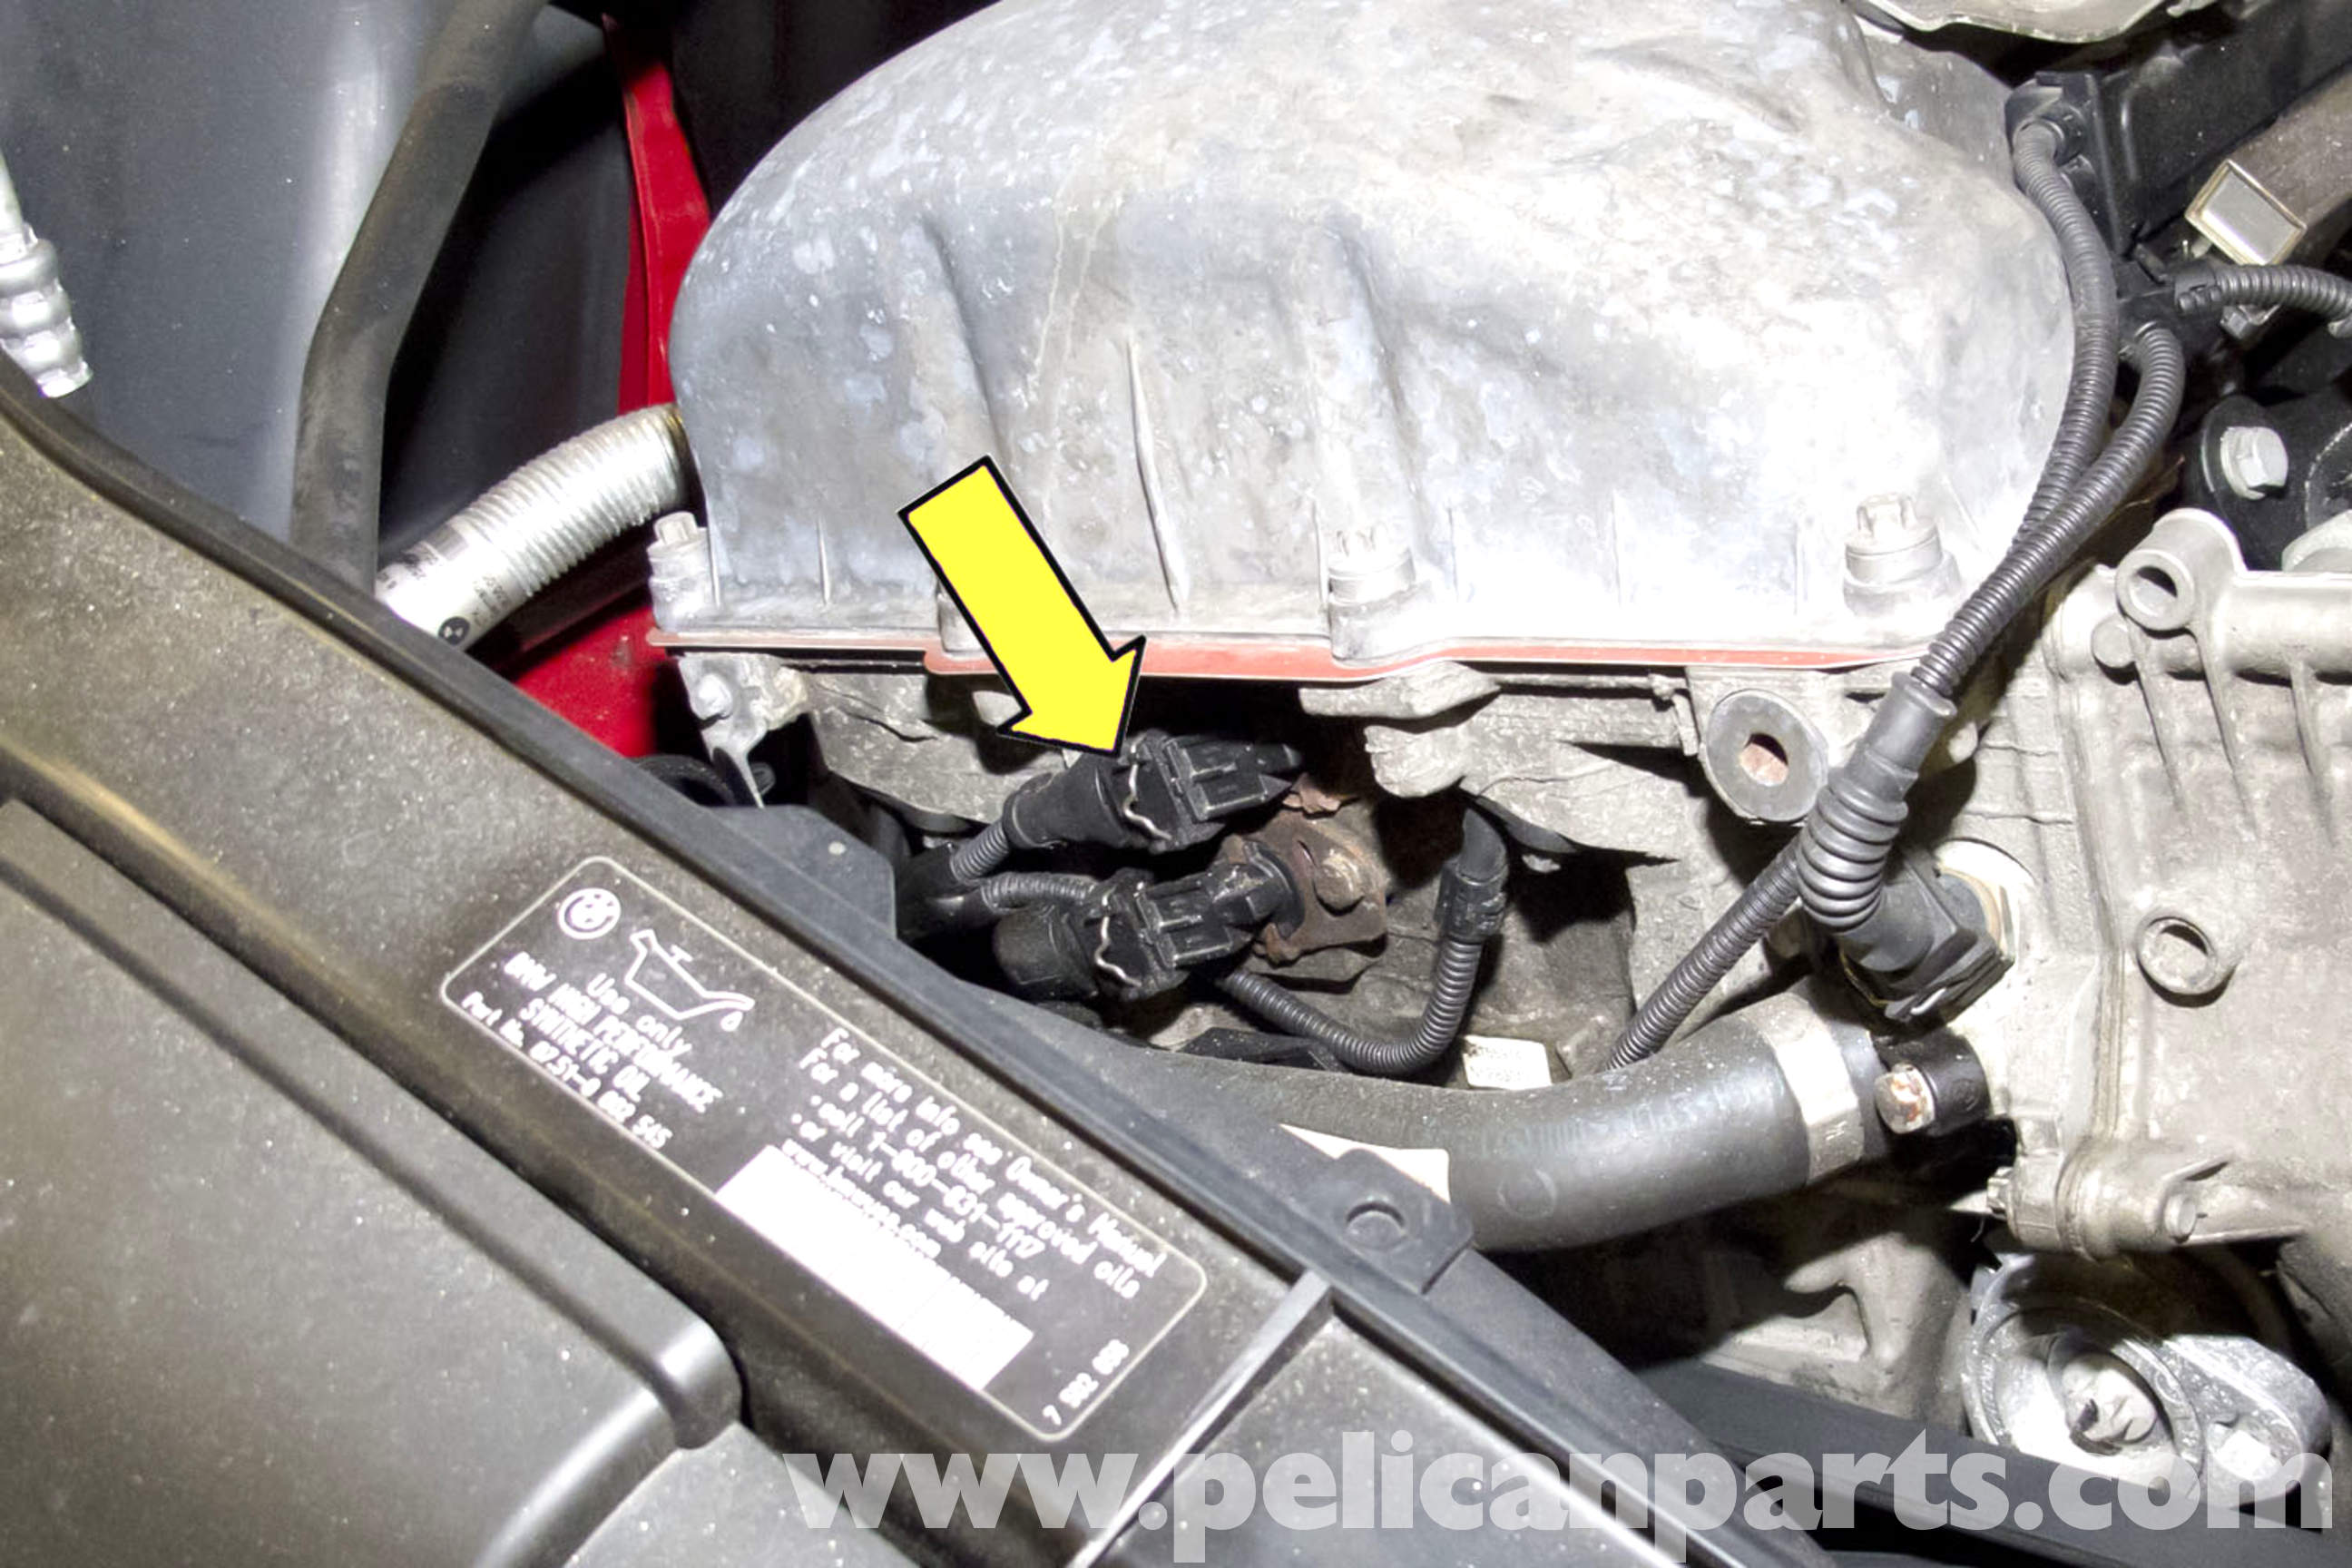 2007 Mini Cooper S Fuse Box Simple Guide About Wiring Diagram 2006 Bmw E90 Vanos Solenoid Replacement E91 E92 E93